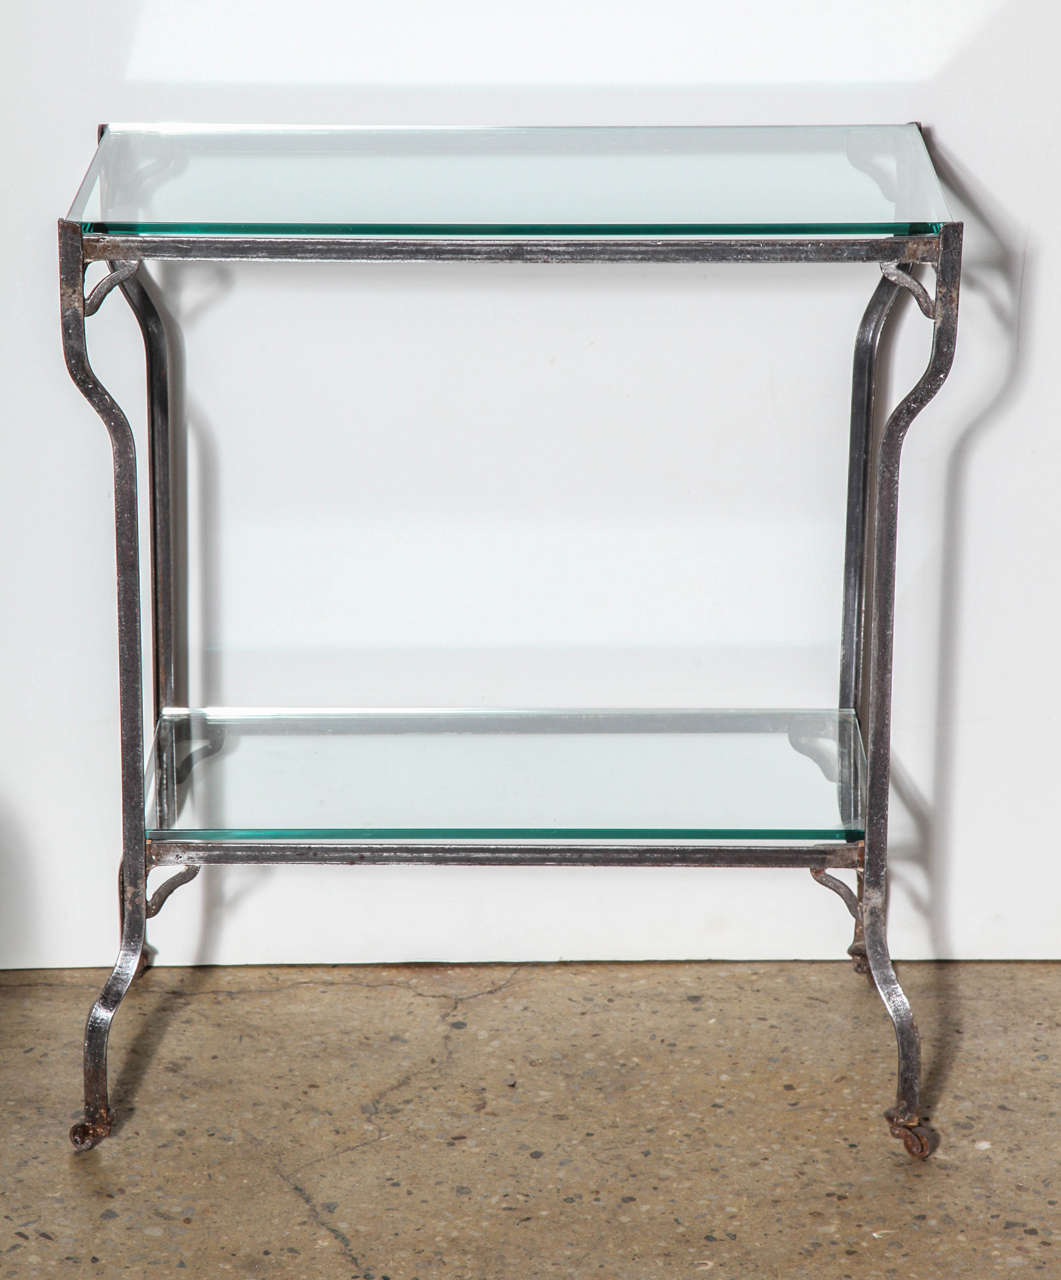 rolling steel beverage cart with two glass shelves and. Black Bedroom Furniture Sets. Home Design Ideas